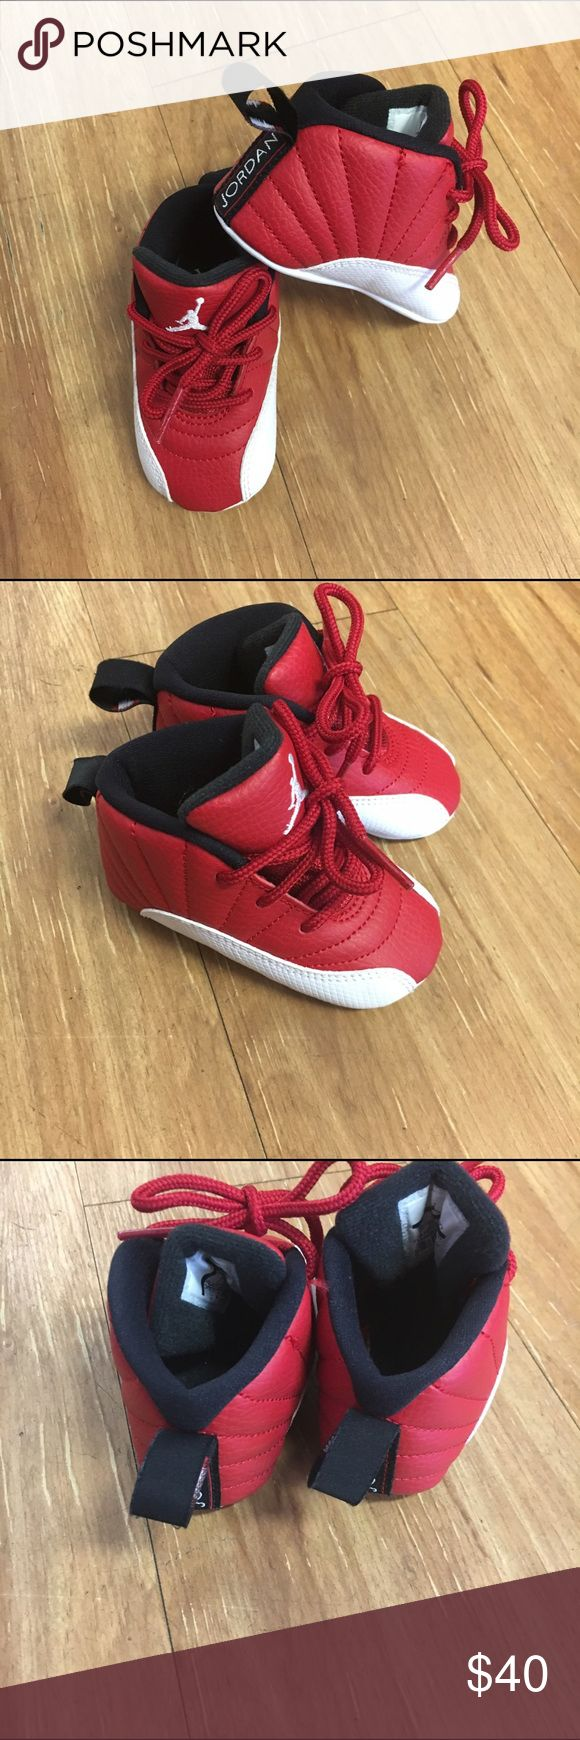 """Nike Air Jordan Retro 12 XII Alternate Red White 3 Nike Air Jordan Retro 12 XII Alternate Red White Crib Shoes 3  In excellent condition.  Due to being infant shoes, these have very little sign of use.  Bottom of outsole measures just short (millimeters) of 5"""".  #nike #kicks #coolkicks #alternatered #jordan #retroxii #retro12 #black #basketball #white Jordan Shoes Sneakers"""